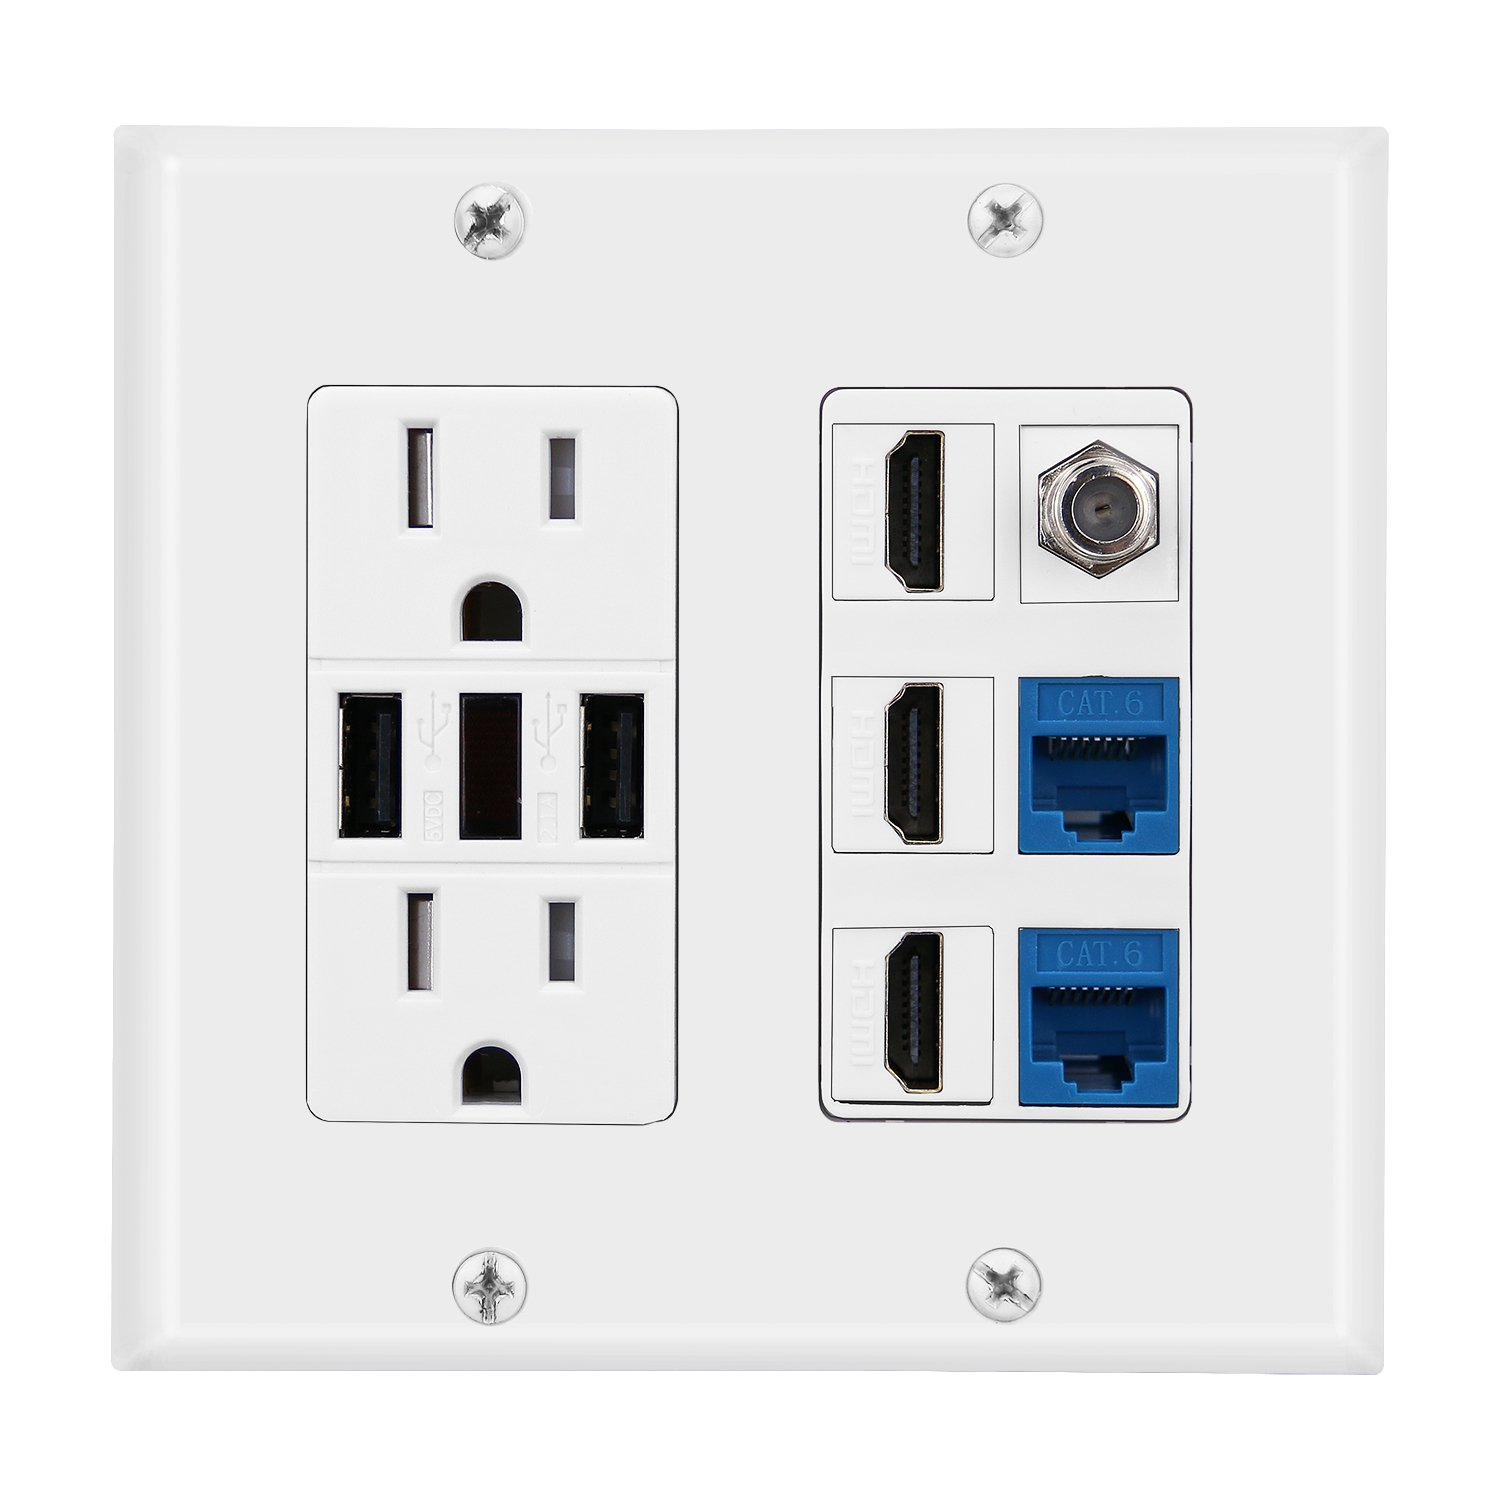 IMONTA 2 Power Outlet 15A with Dual 2.4A USB charger Port Wall Plate with LED lighting, 3 HDMI HDTV + 2 CAT6 RJ45 Ethernet + Coaxial Cable TV F Type Keystone Face Plate White